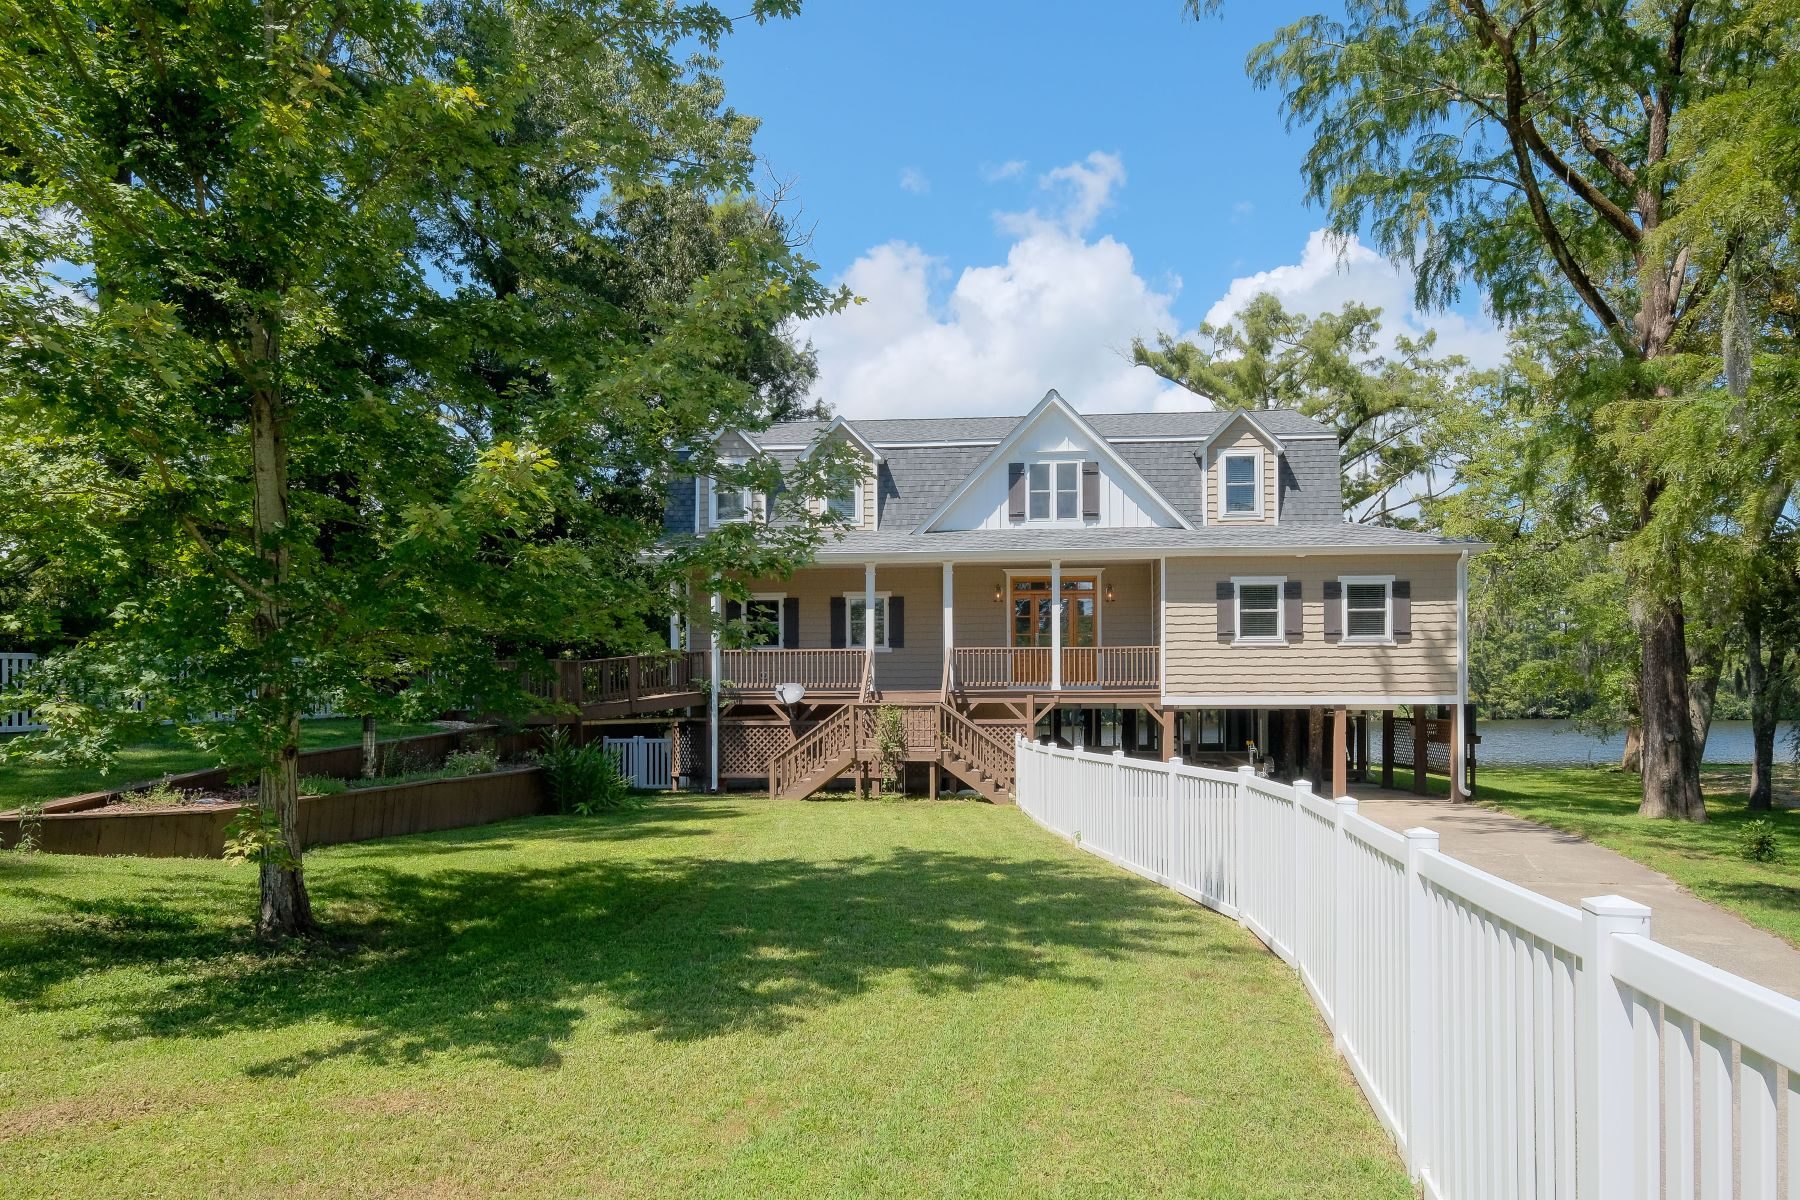 واحد منزل الأسرة للـ Sale في INCREDIBLE OPPORTUNITY 111 Cypress Dr, Edenton, North Carolina, 27932 United States